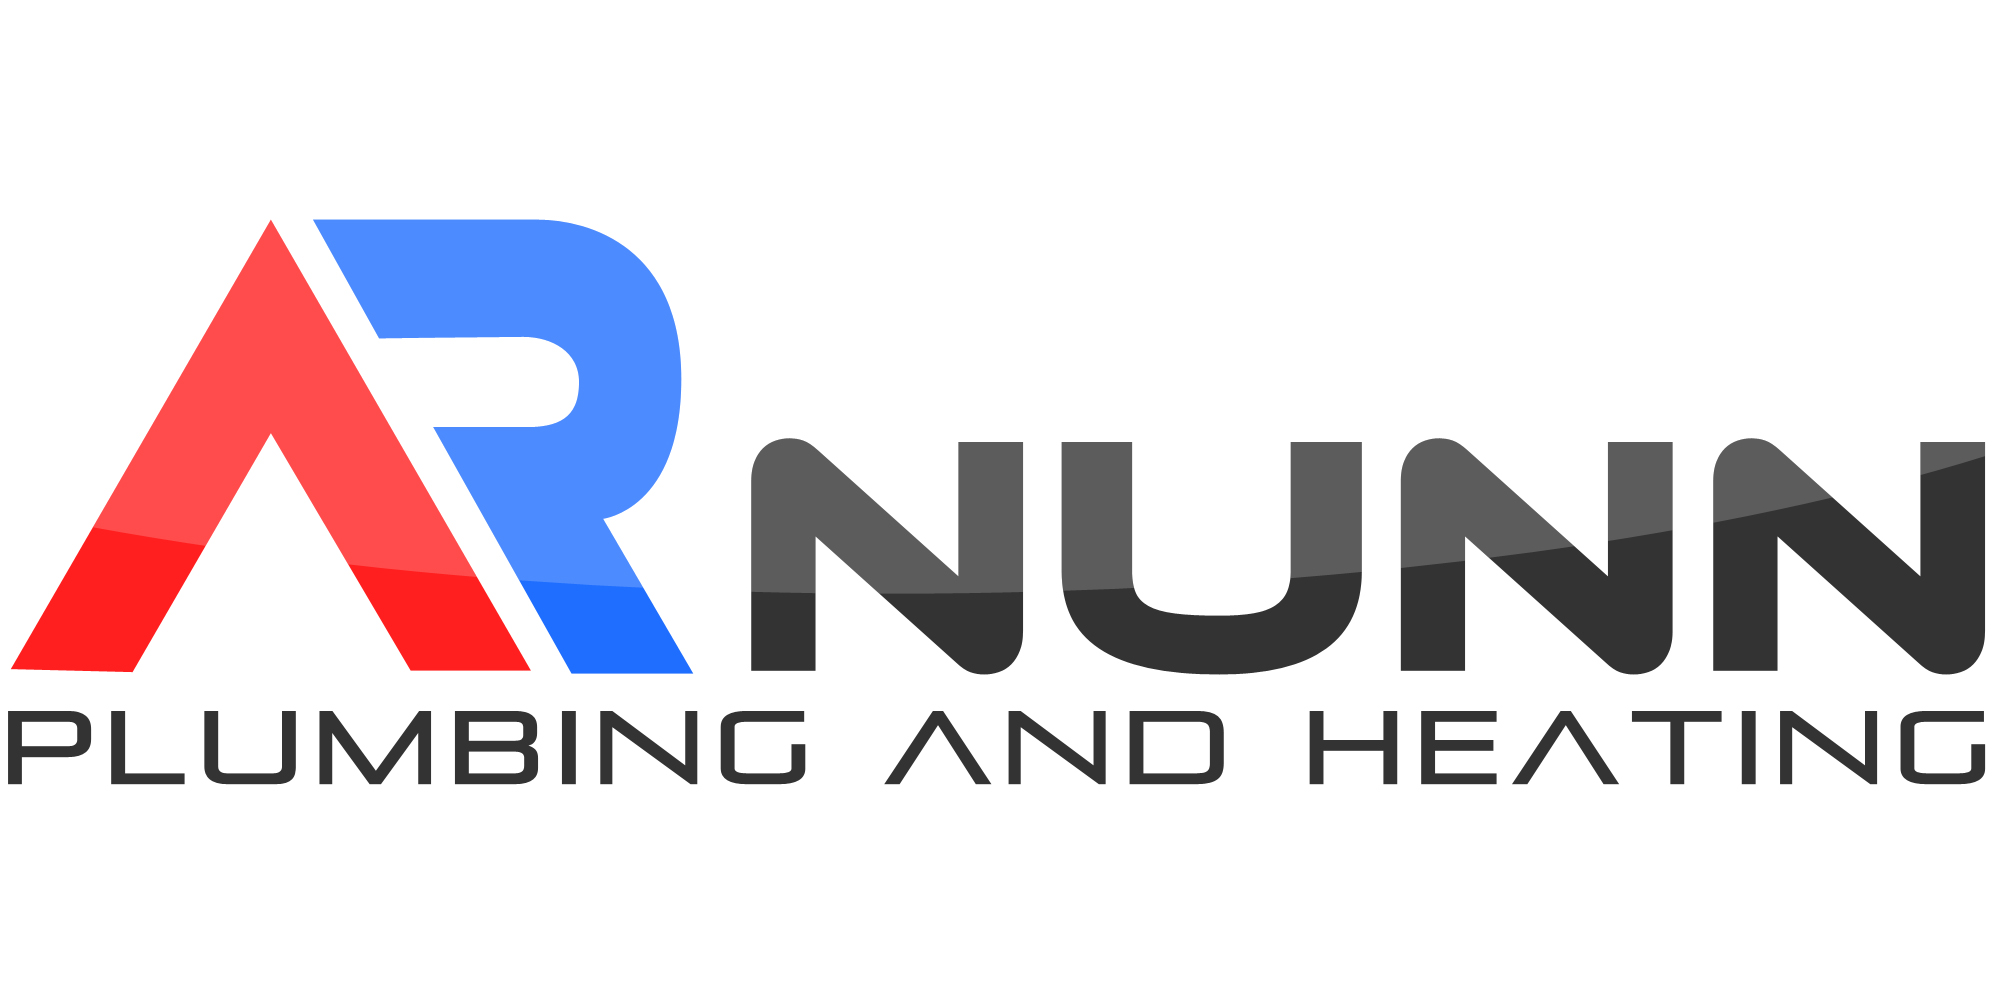 A R Nunn Plumbing and Heating Verified Logo